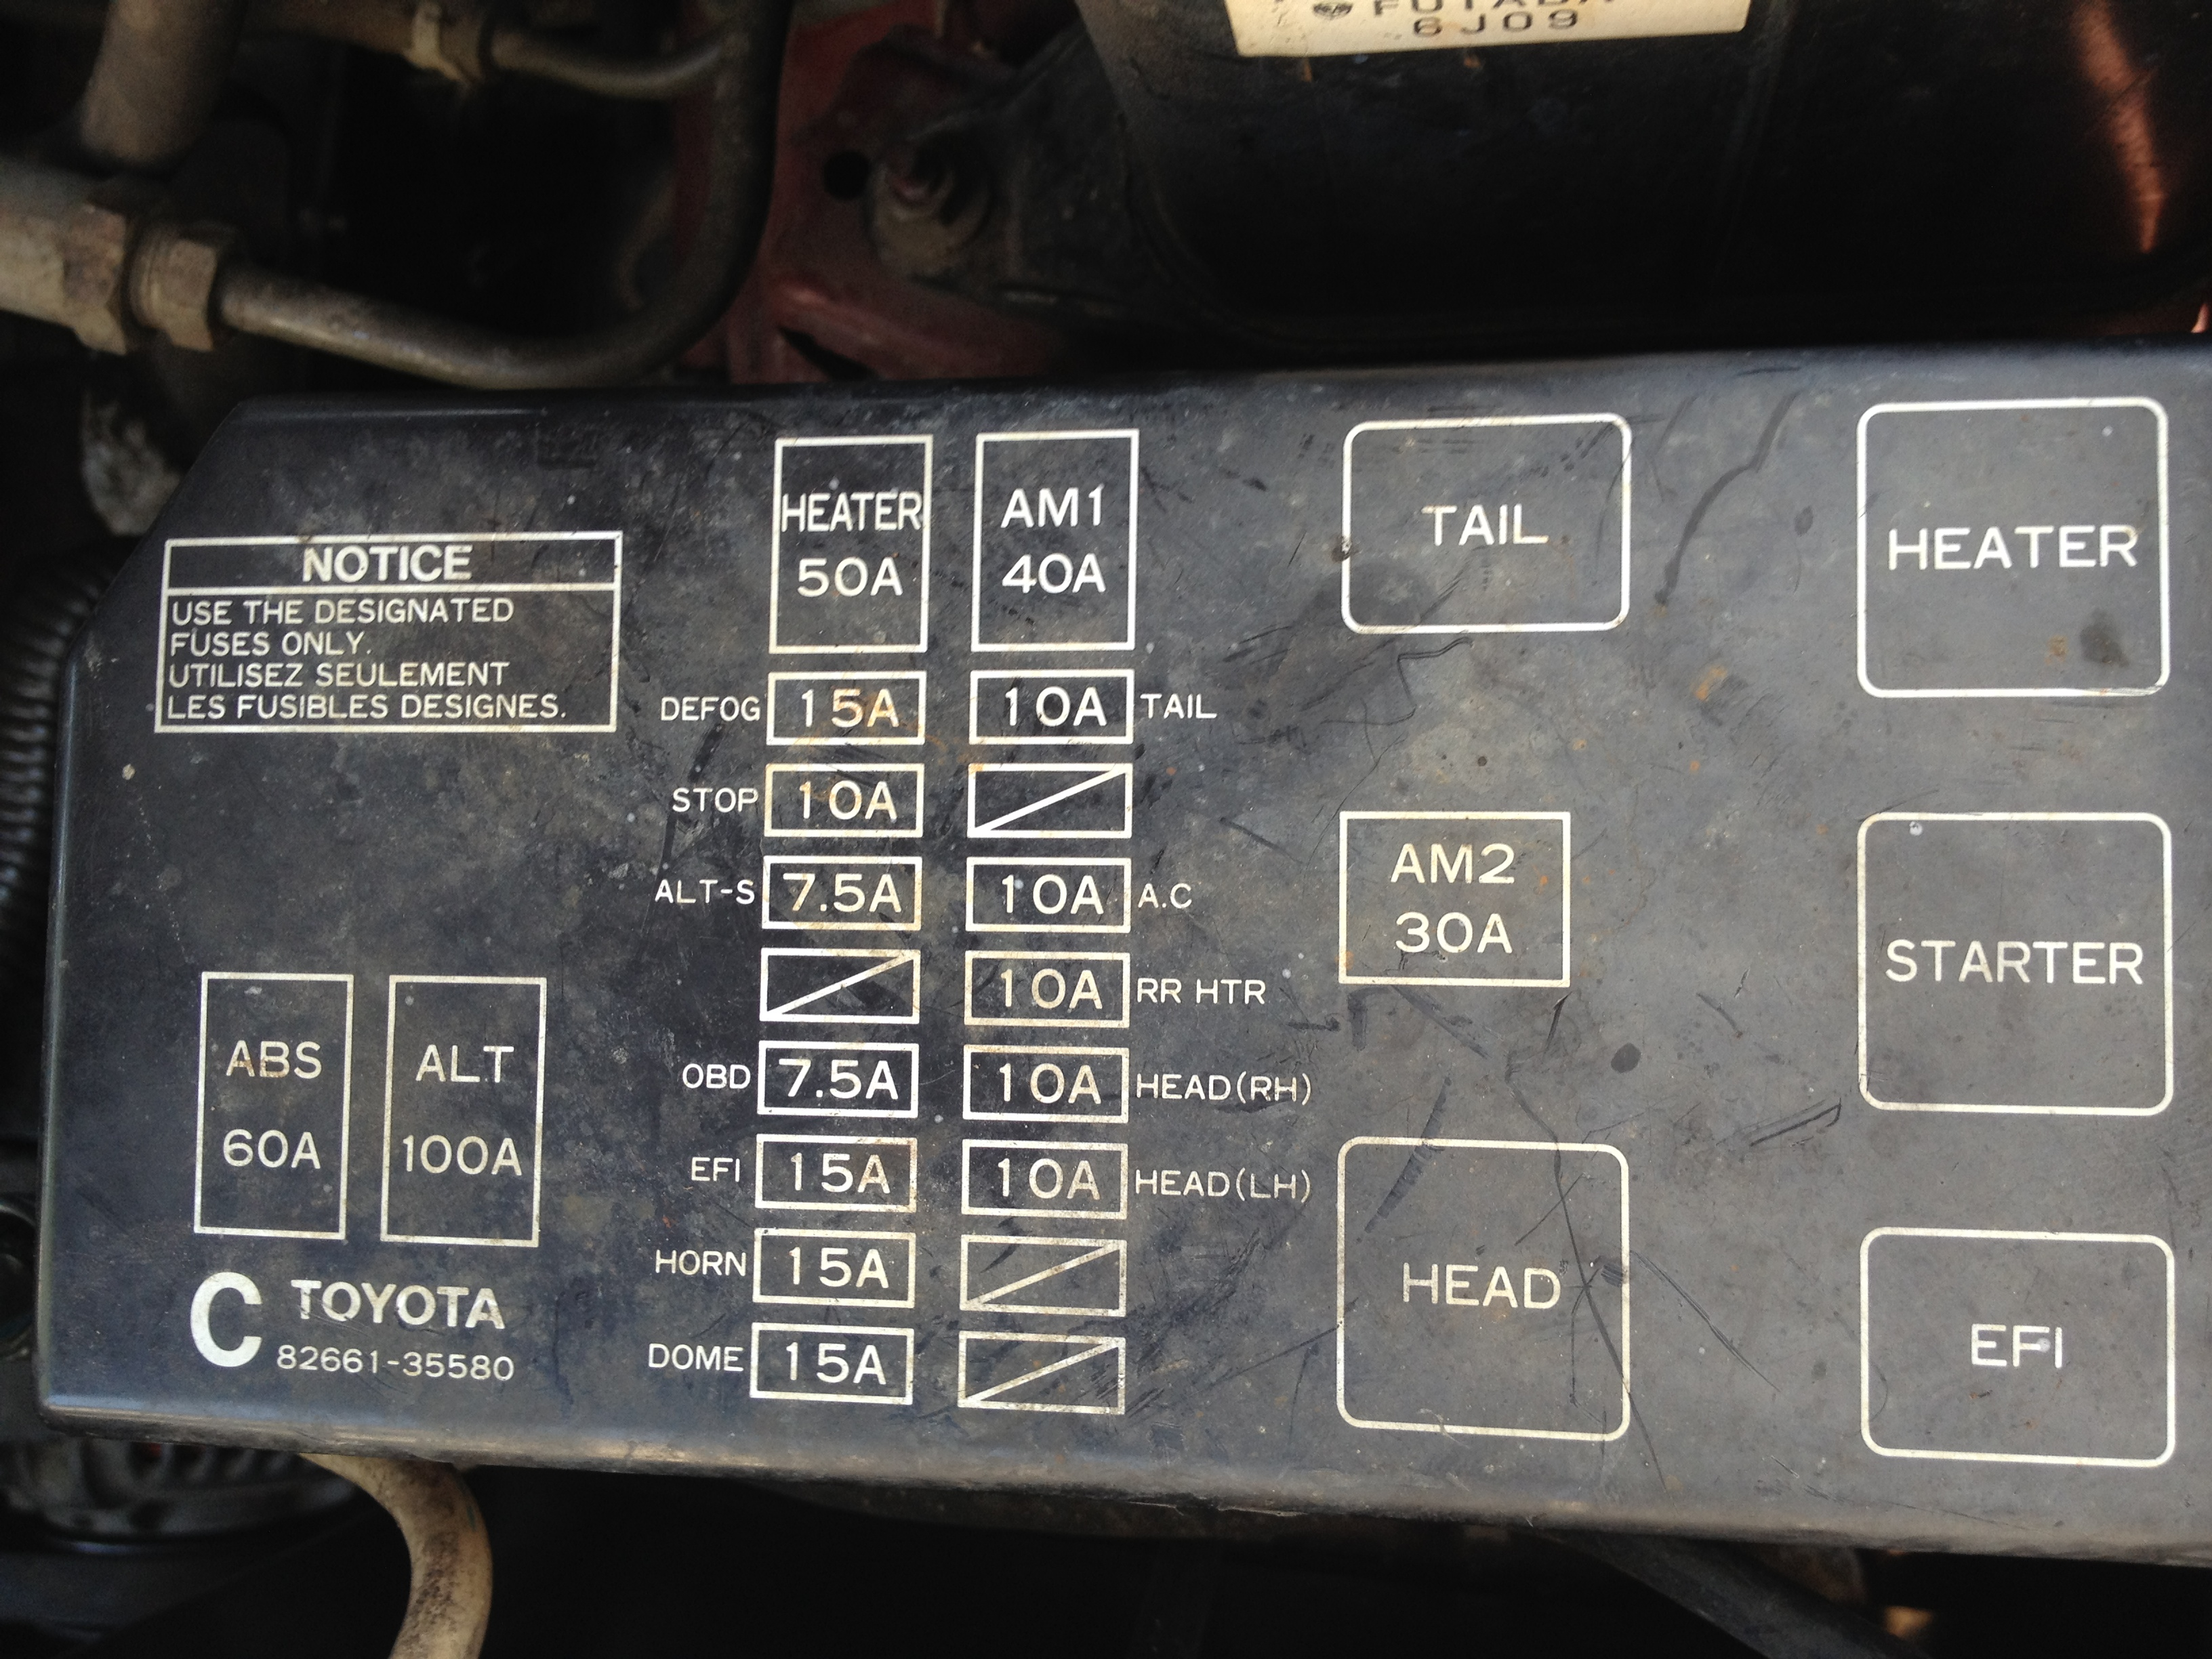 1996 Toyota 4runner Fuse Box Diagram Trusted Wiring Diagram 1996 Toyota  4Runner Fuse Box Diagram 2000 Toyota 4runner Fuse Box Diagram